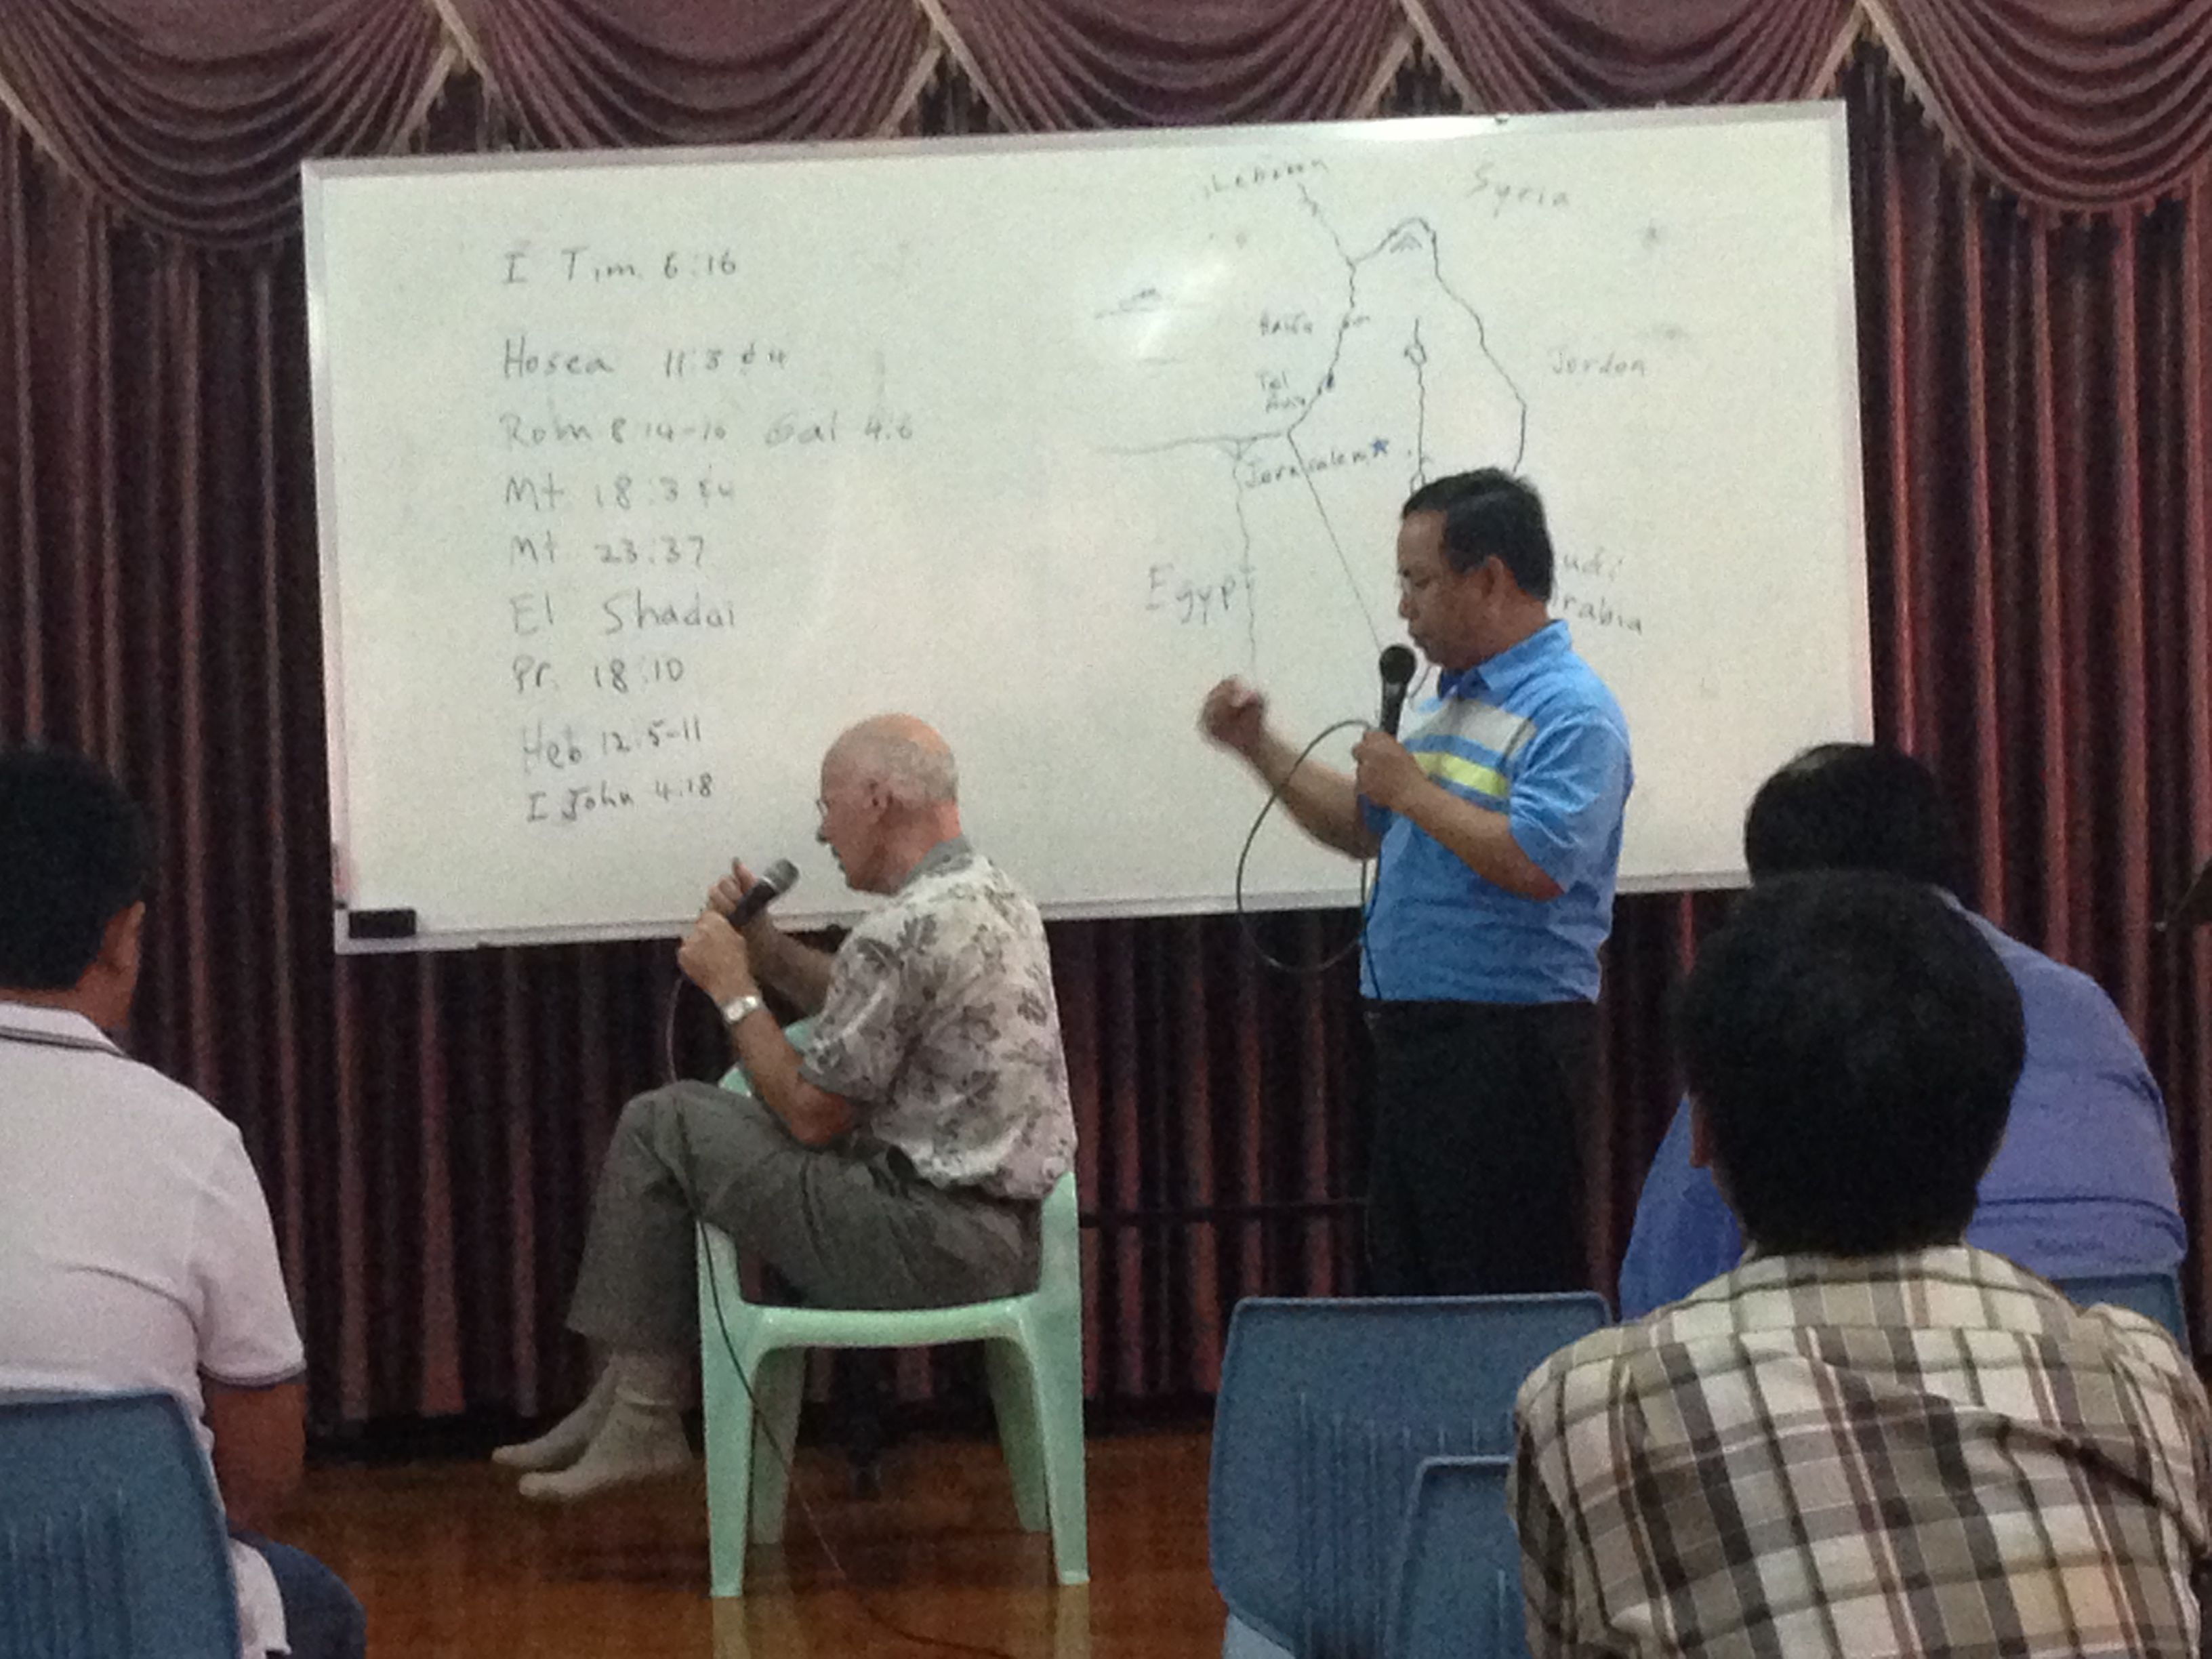 Dr. Meyers & Dr. Khai teaching Christian Leaders and Ministers